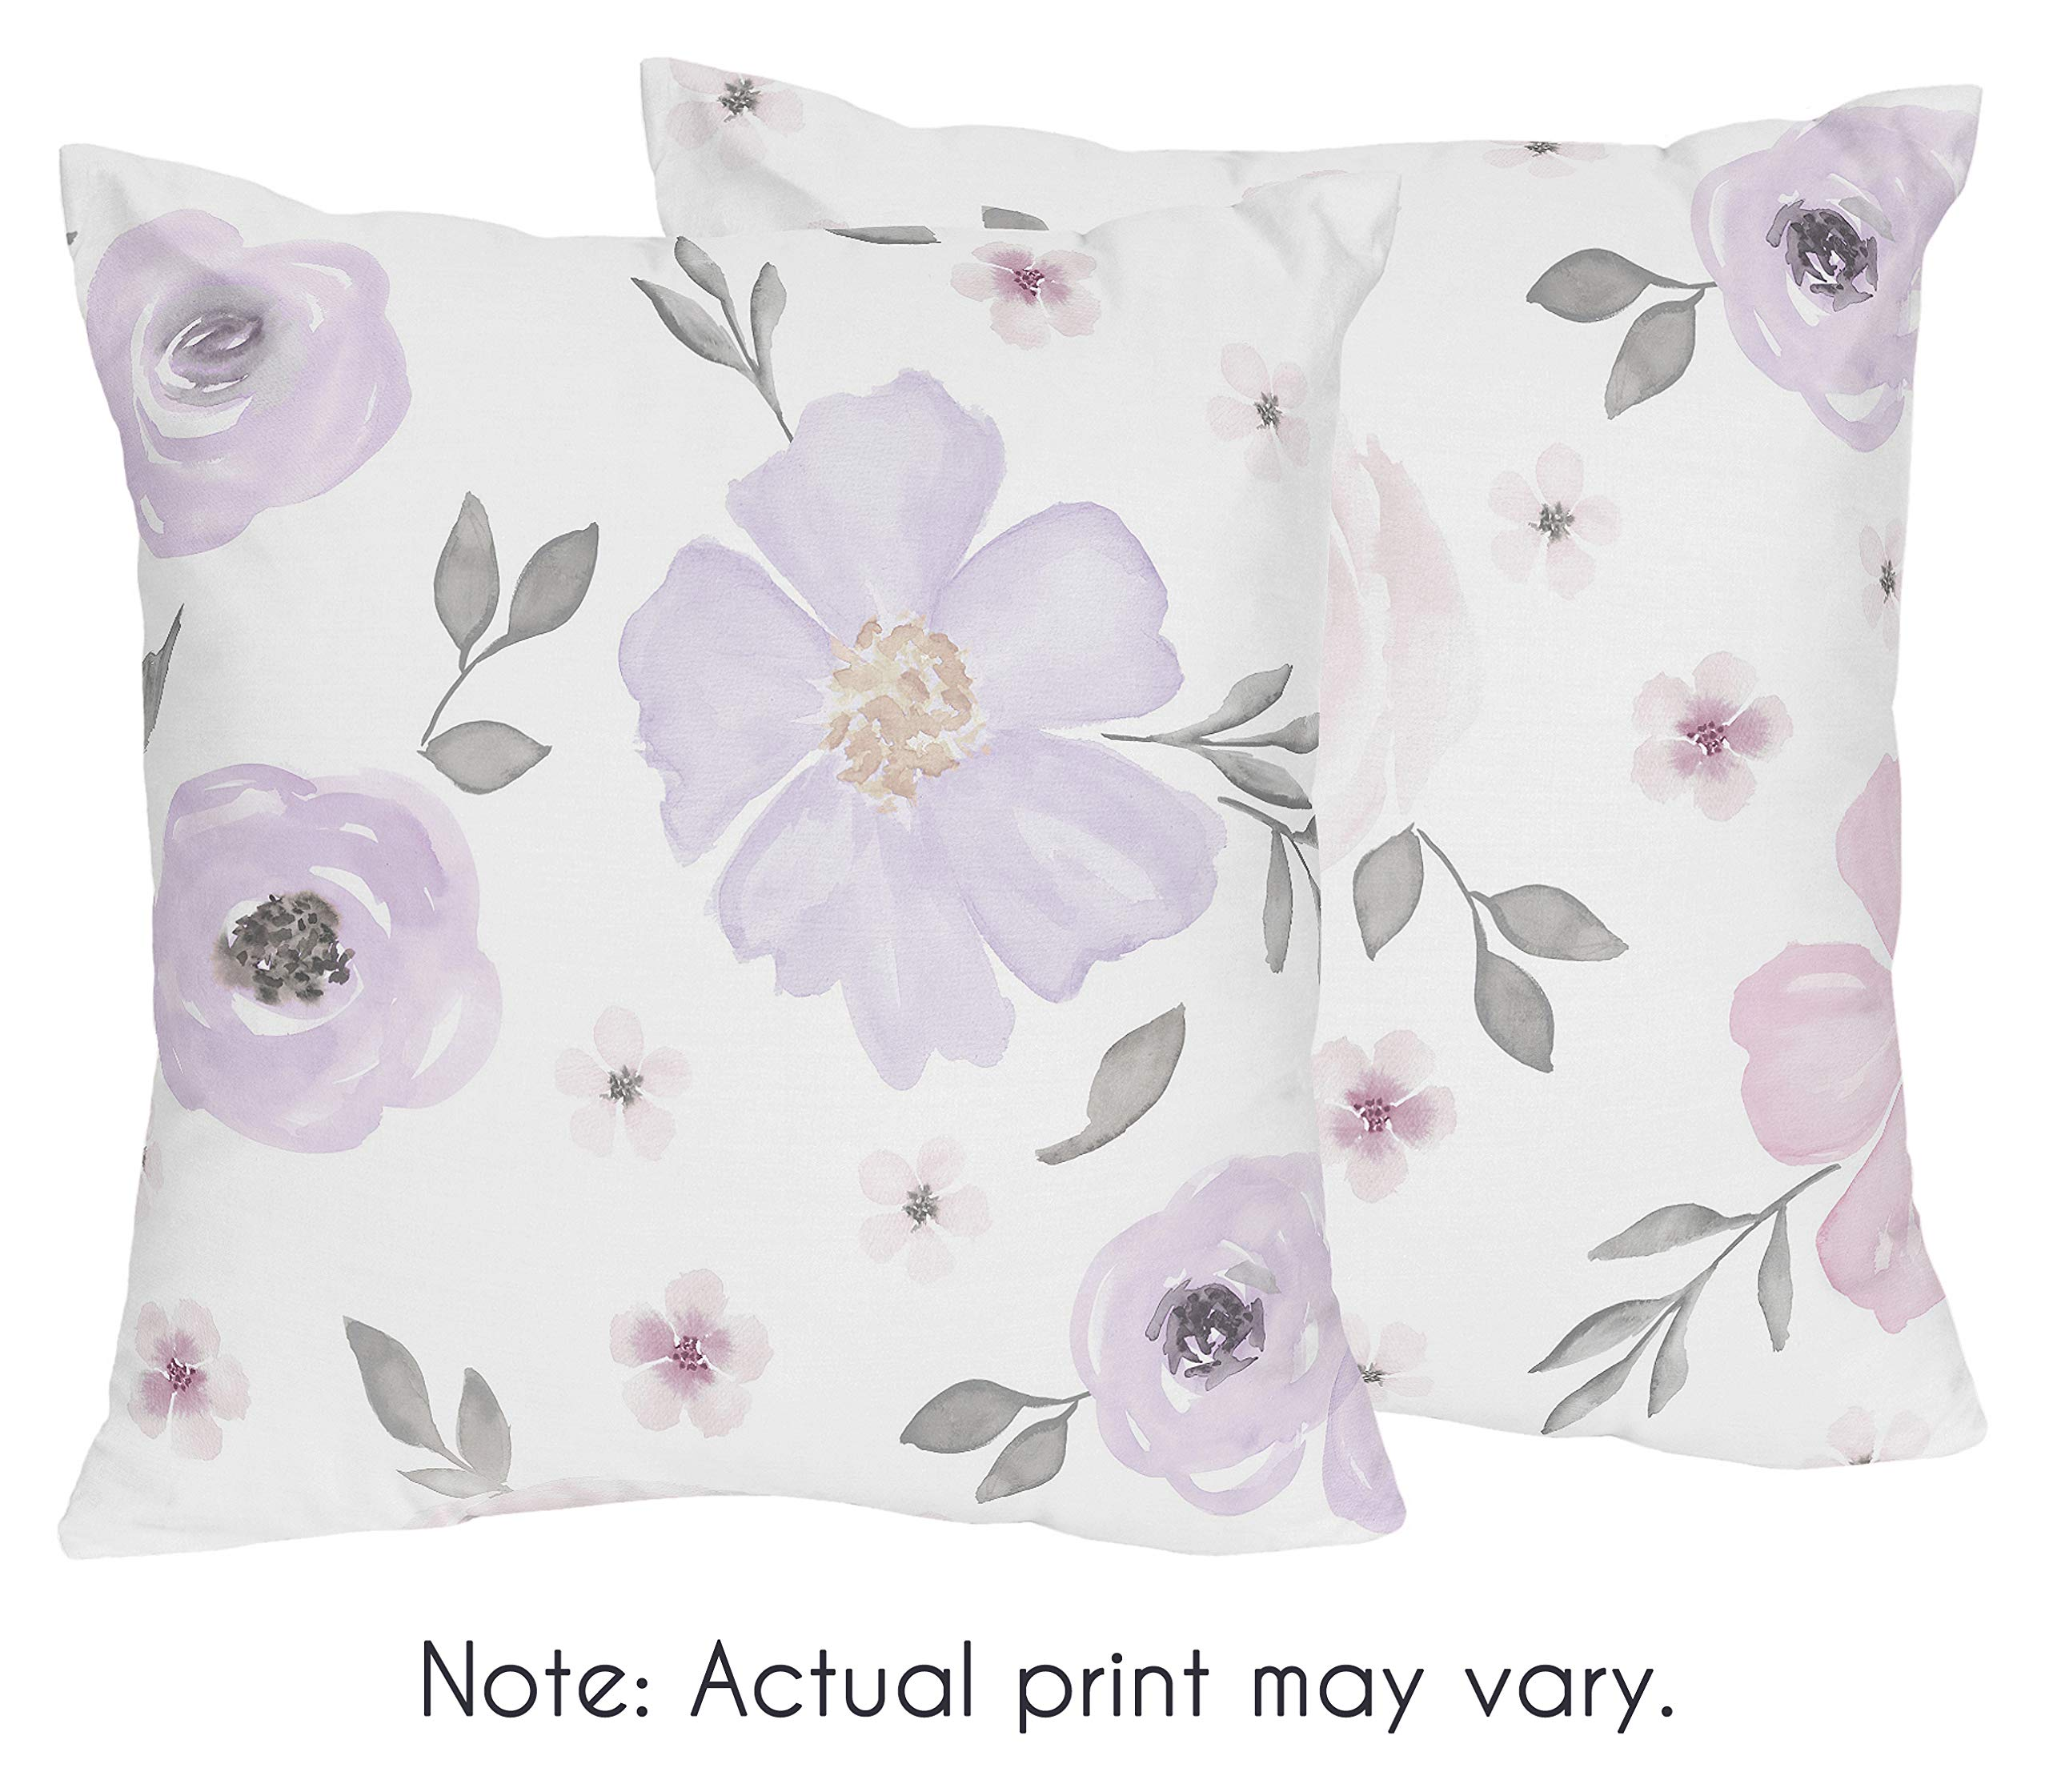 Sweet Jojo Designs Lavender Purple, Pink, Grey and White Decorative Accent Throw Pillows for Watercolor Floral Collection - Set of 2 Rose Flower